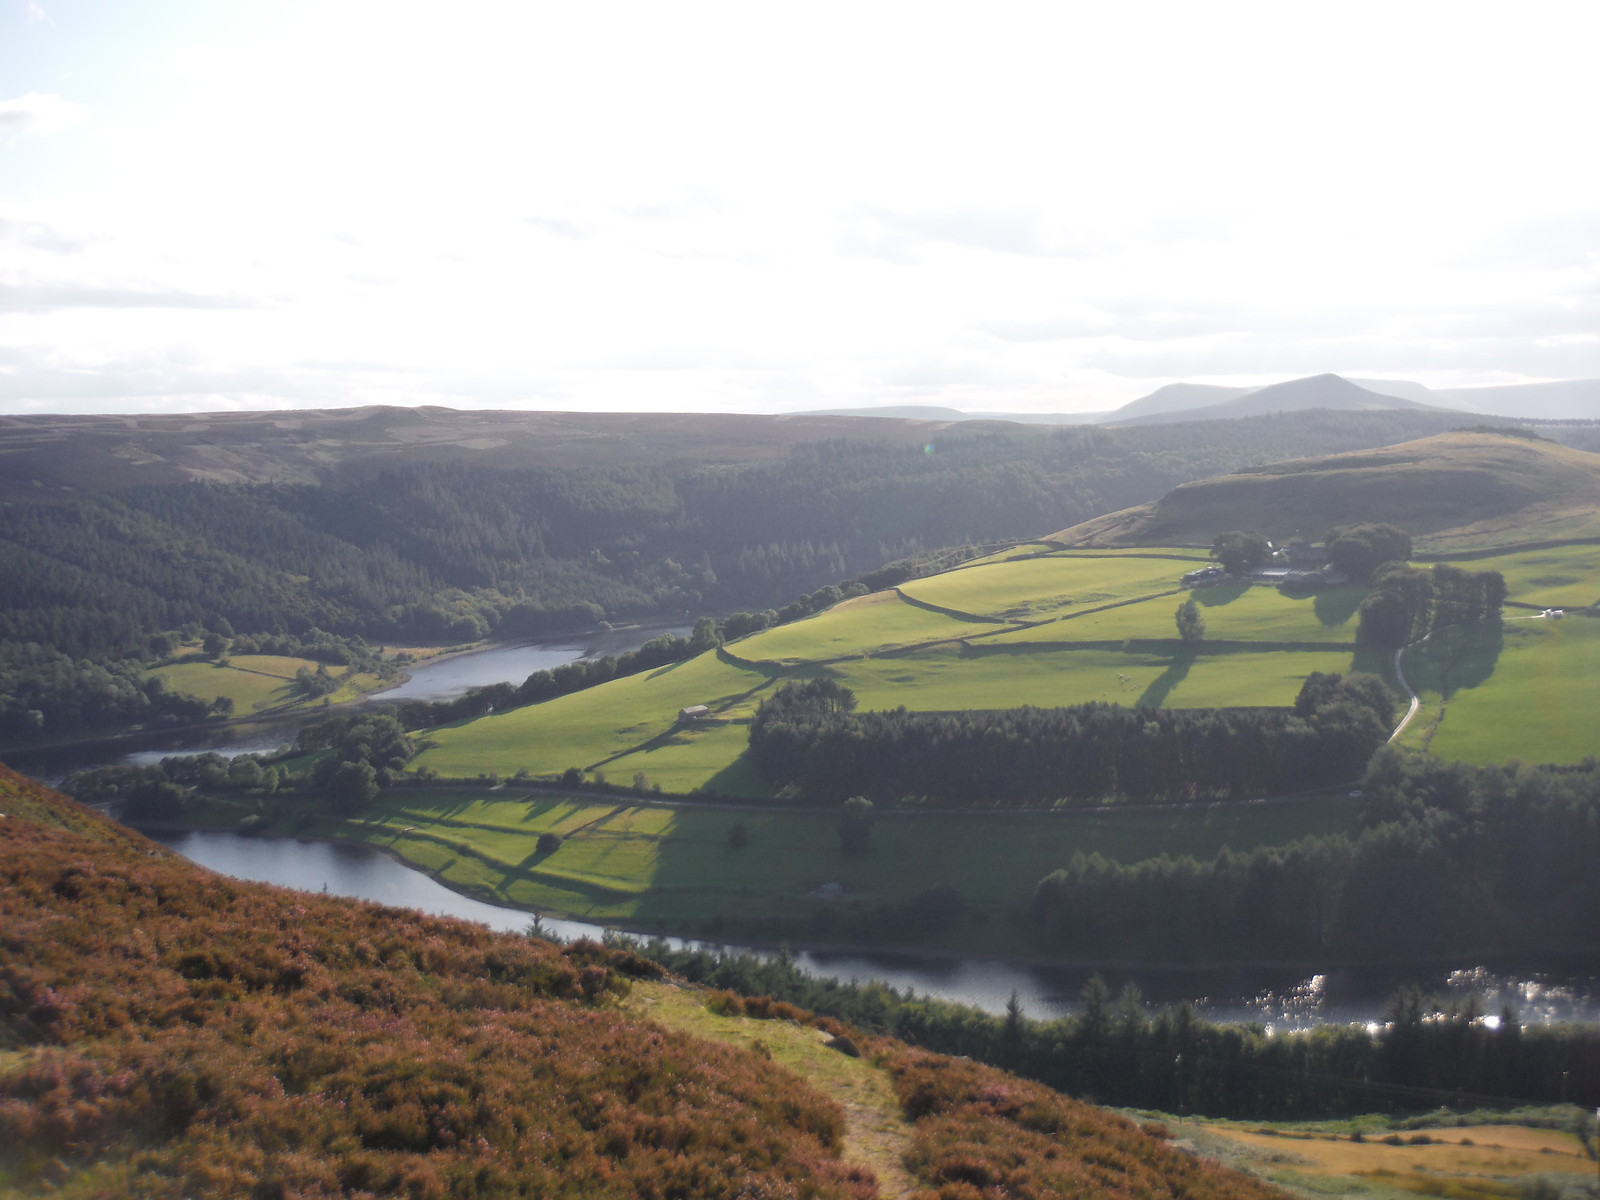 Evening View of Woodlands Valley and Ladybower Reservoir, from Six-Way Junction SWC Walk 348 - Ladybower Inn Circular (via Derwent Edges and Strines)